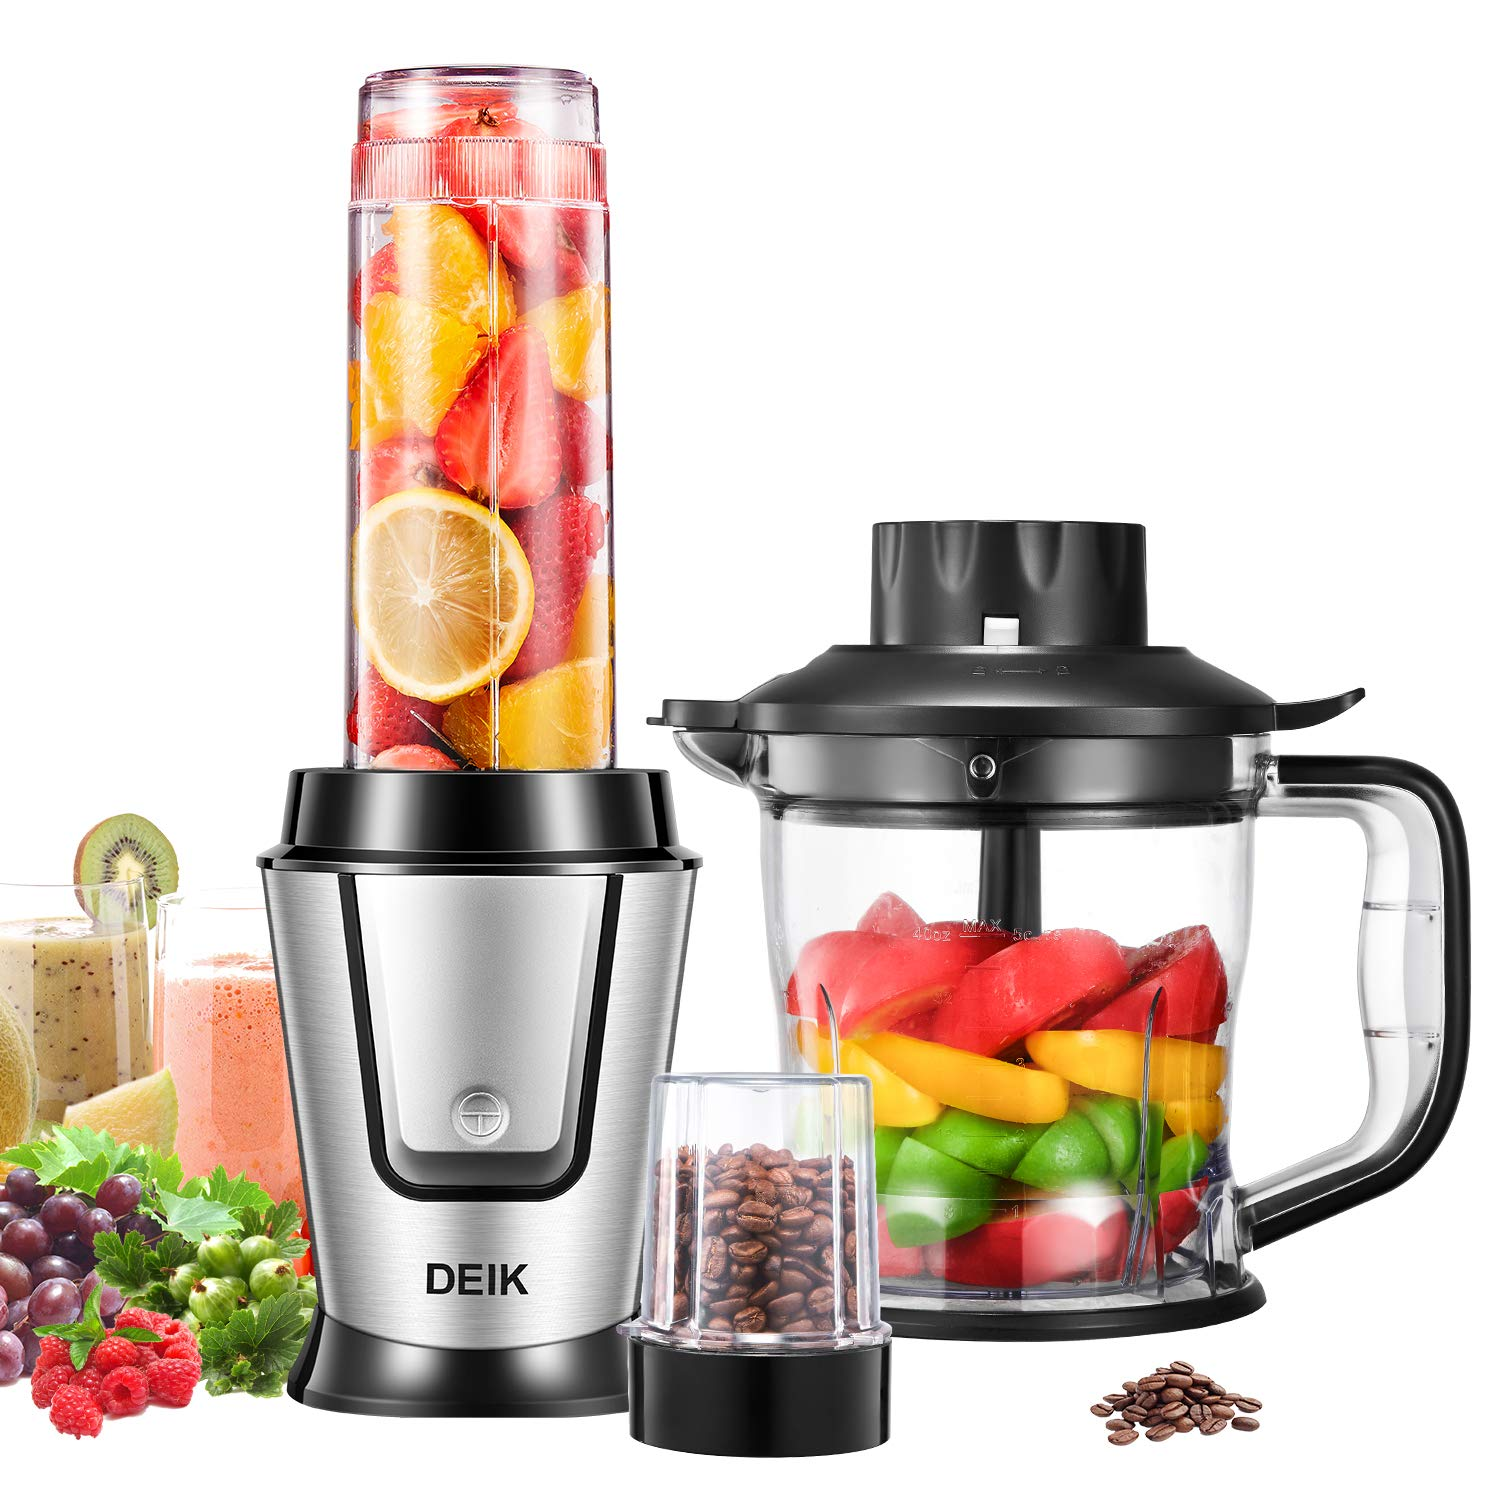 Smoothie Blender, Deik 3 in 1 Multifunction Personal Blender with Variety Size Blending Cup, Including Chopper Attachment, Travel Portable Bottle and Grind Cup, Mixer Blender for Shakes & Smoothies